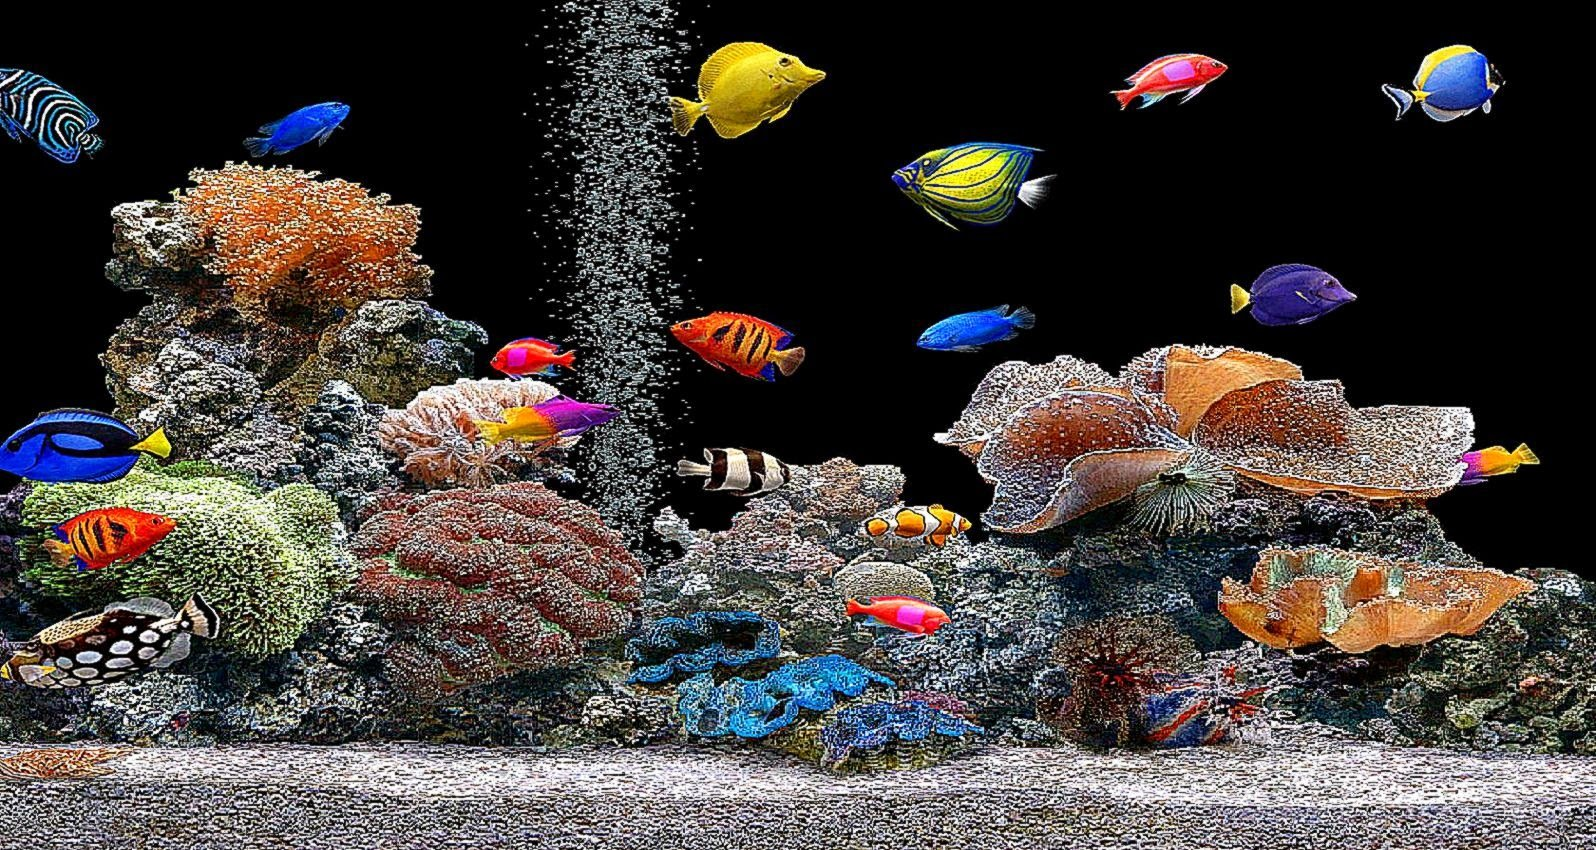 3d aquarium wallpaper wallpapersafari for 3d fish wallpaper